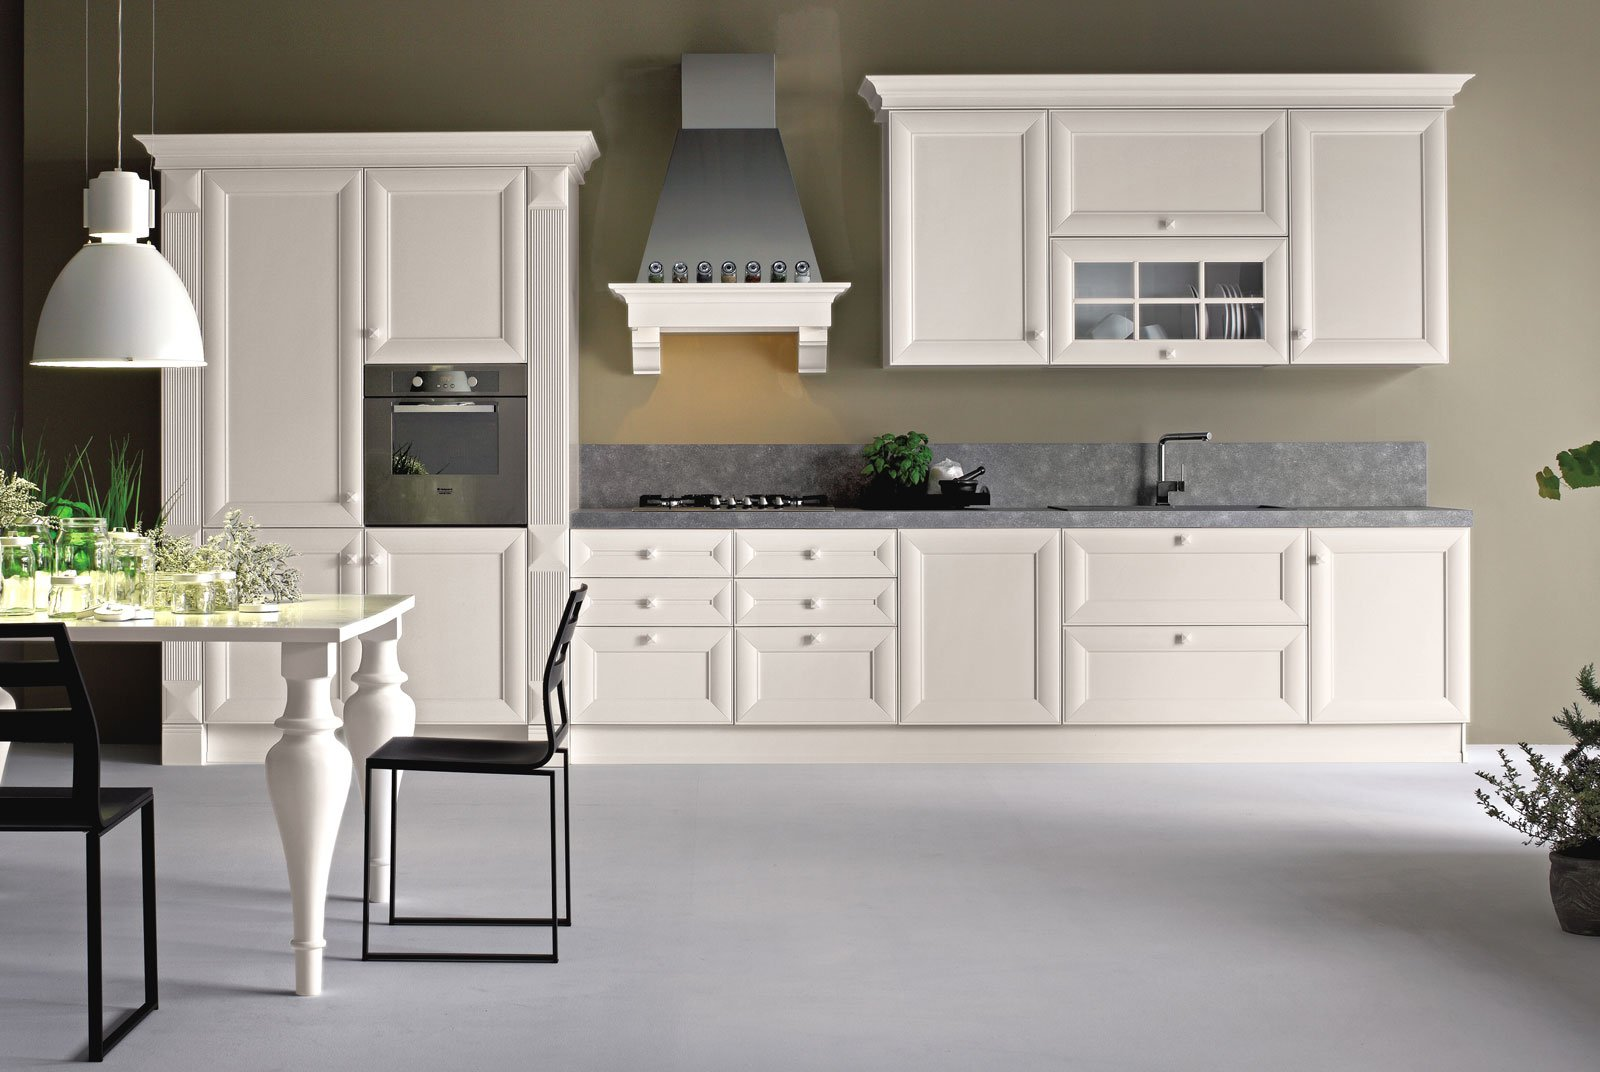 Best Cucina Bianco Opaco Pictures - Skilifts.us - skilifts.us